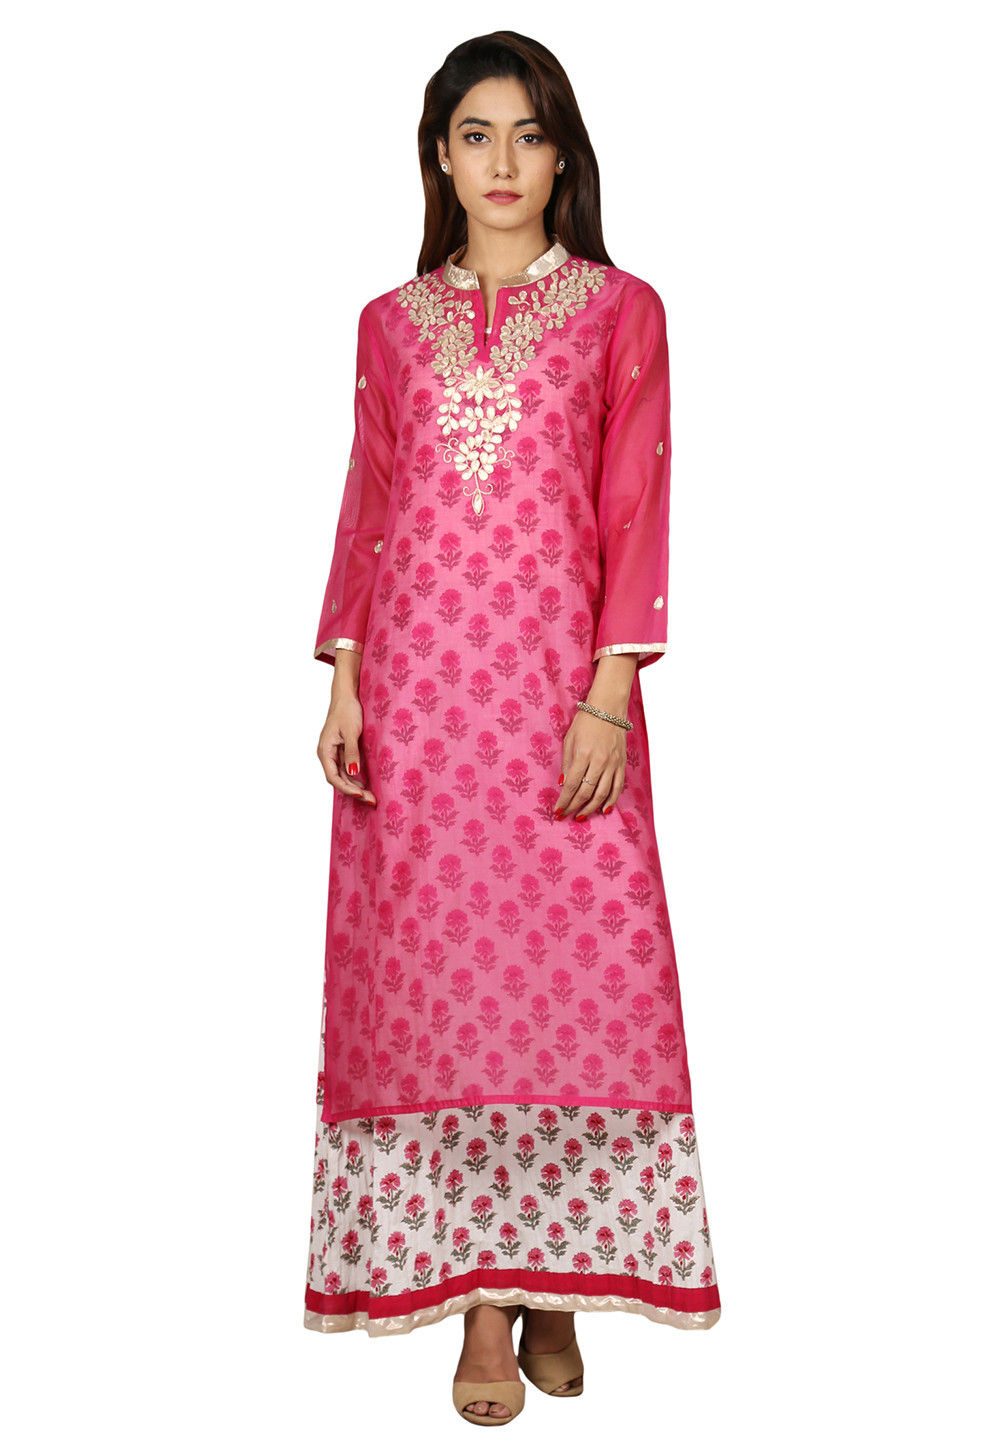 Printed Cotton Kurta with Jacket in Off White and Pink